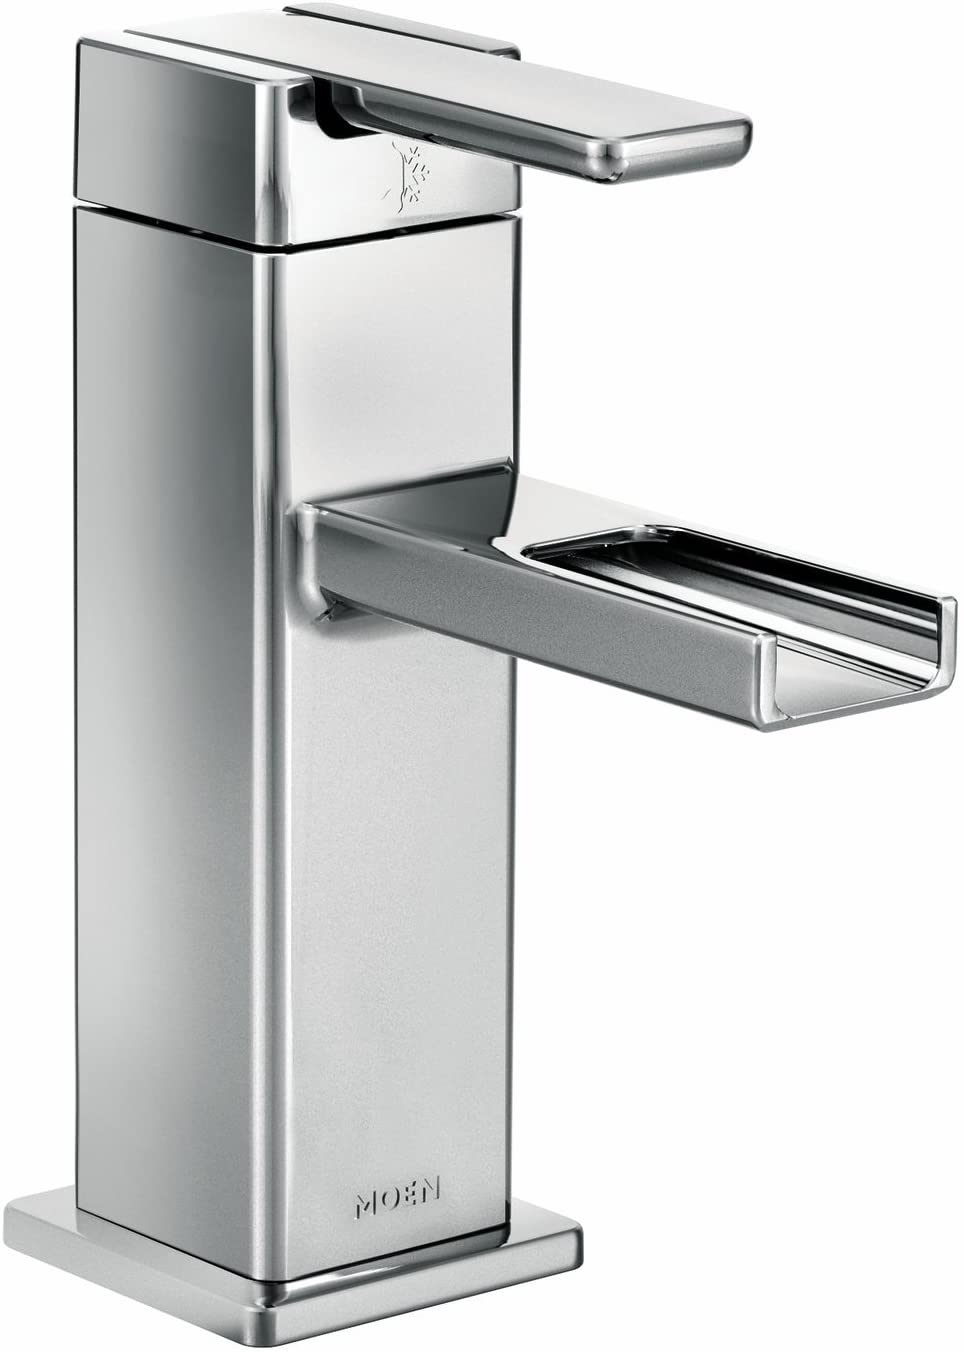 Moen S6705 90-Degree One-Handle Modern Open Waterway Bathroom Faucet with Drain Assembly, Chrome